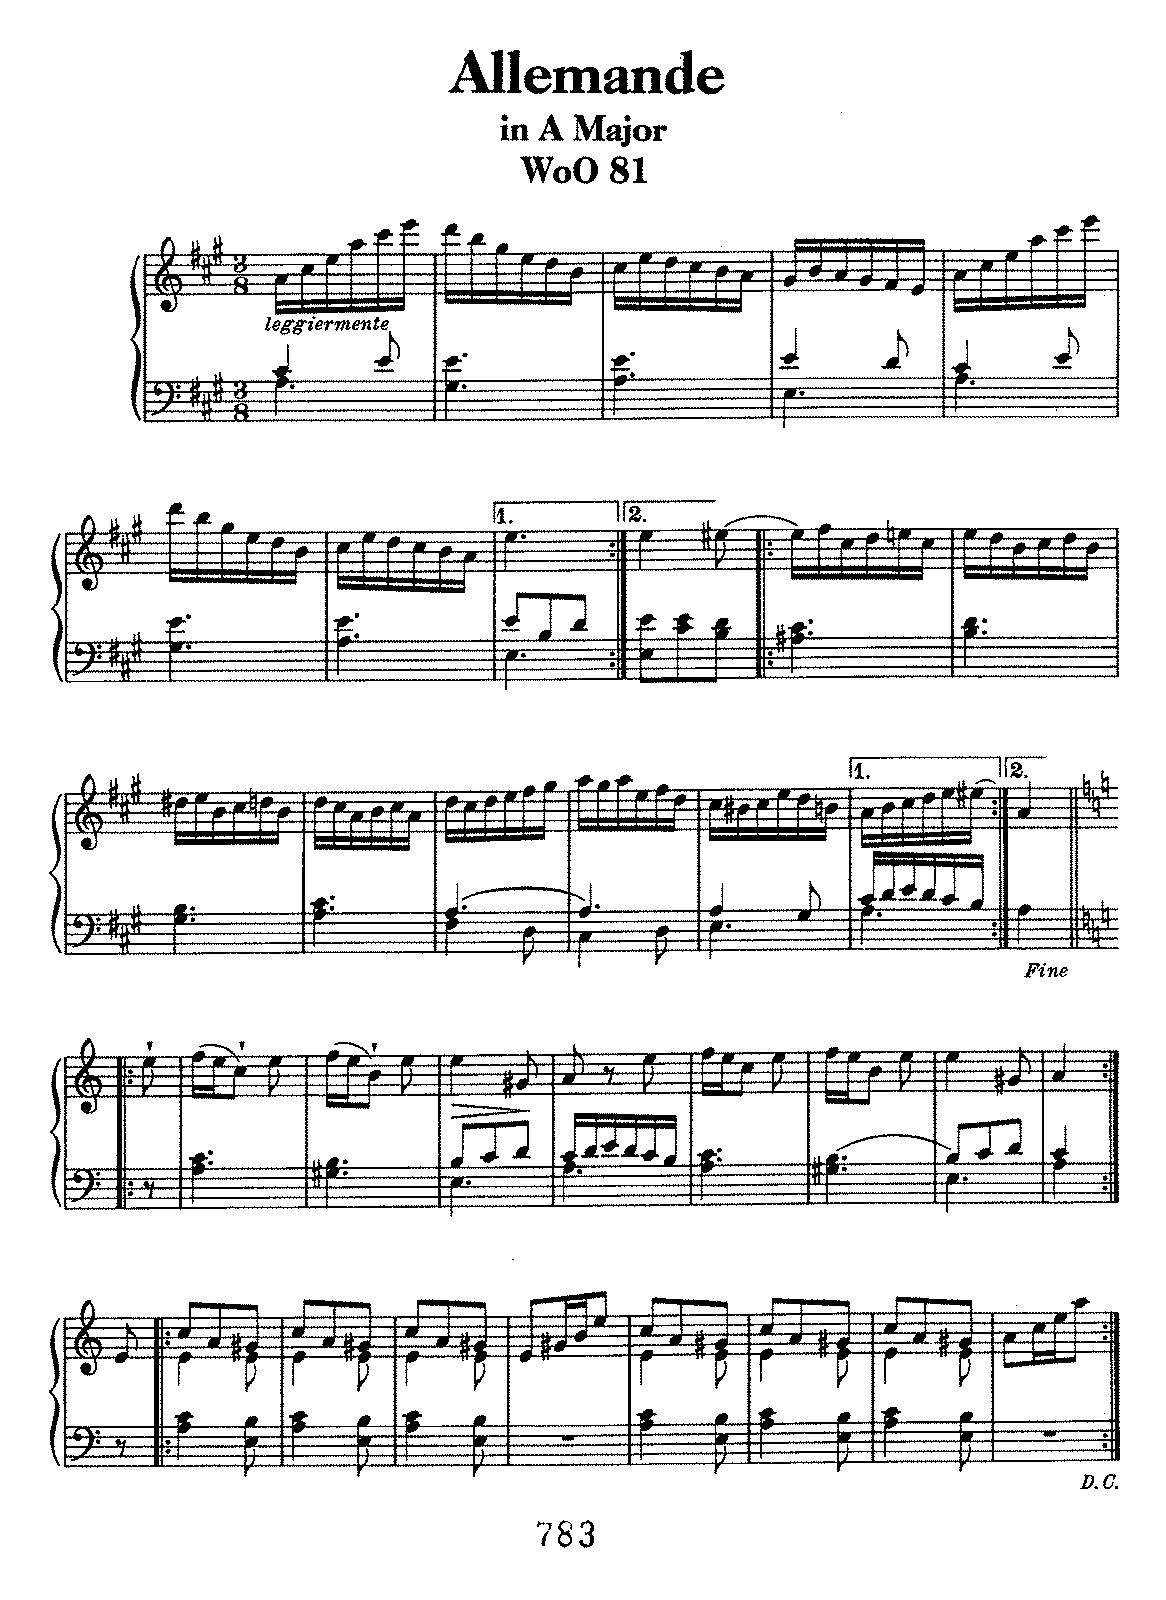 Beethoven woo81 Allemande in A.pdf